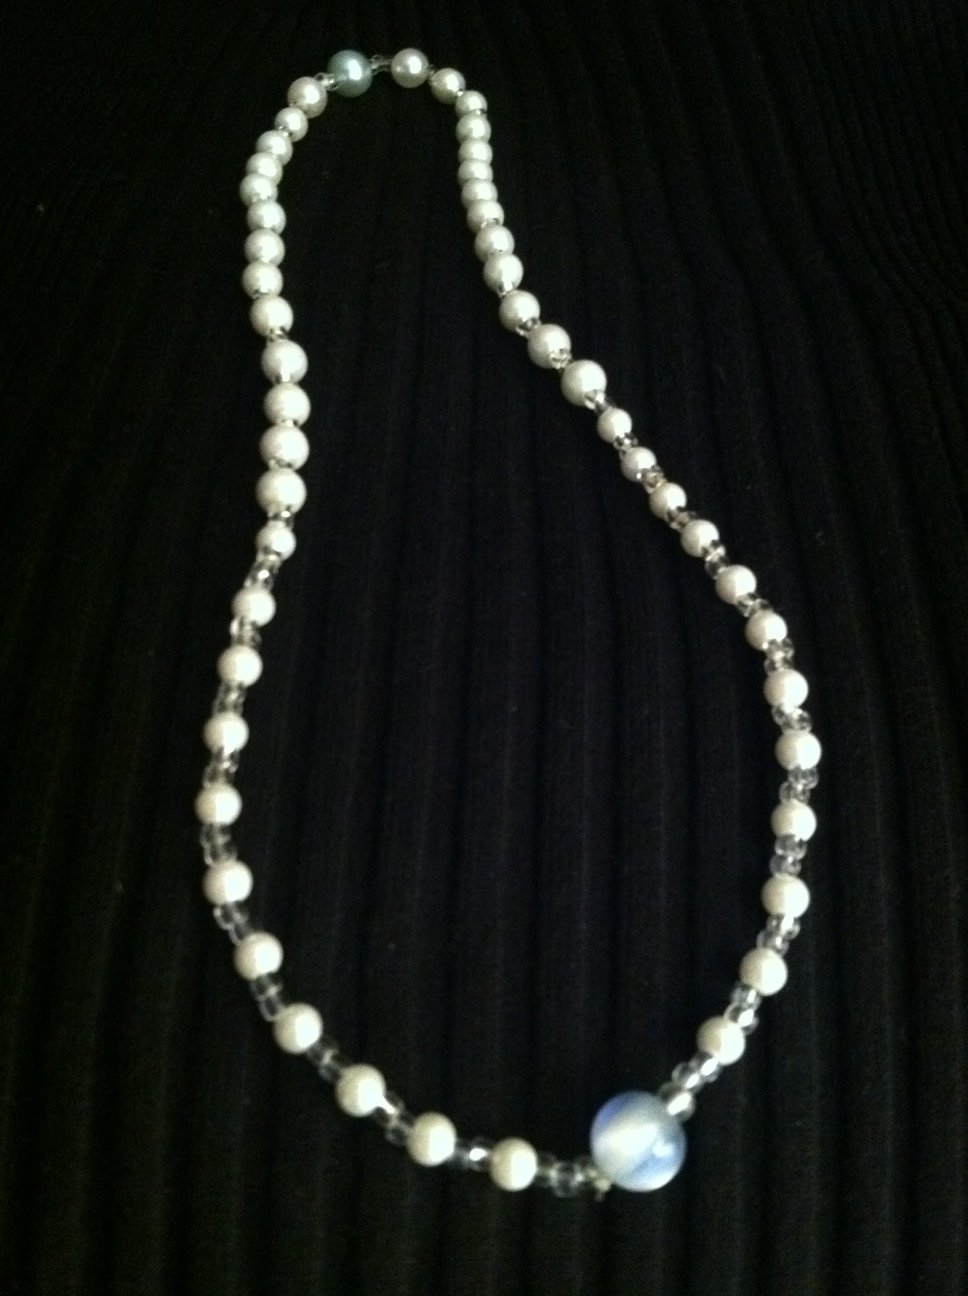 Inpeloto Pearls for the New Year